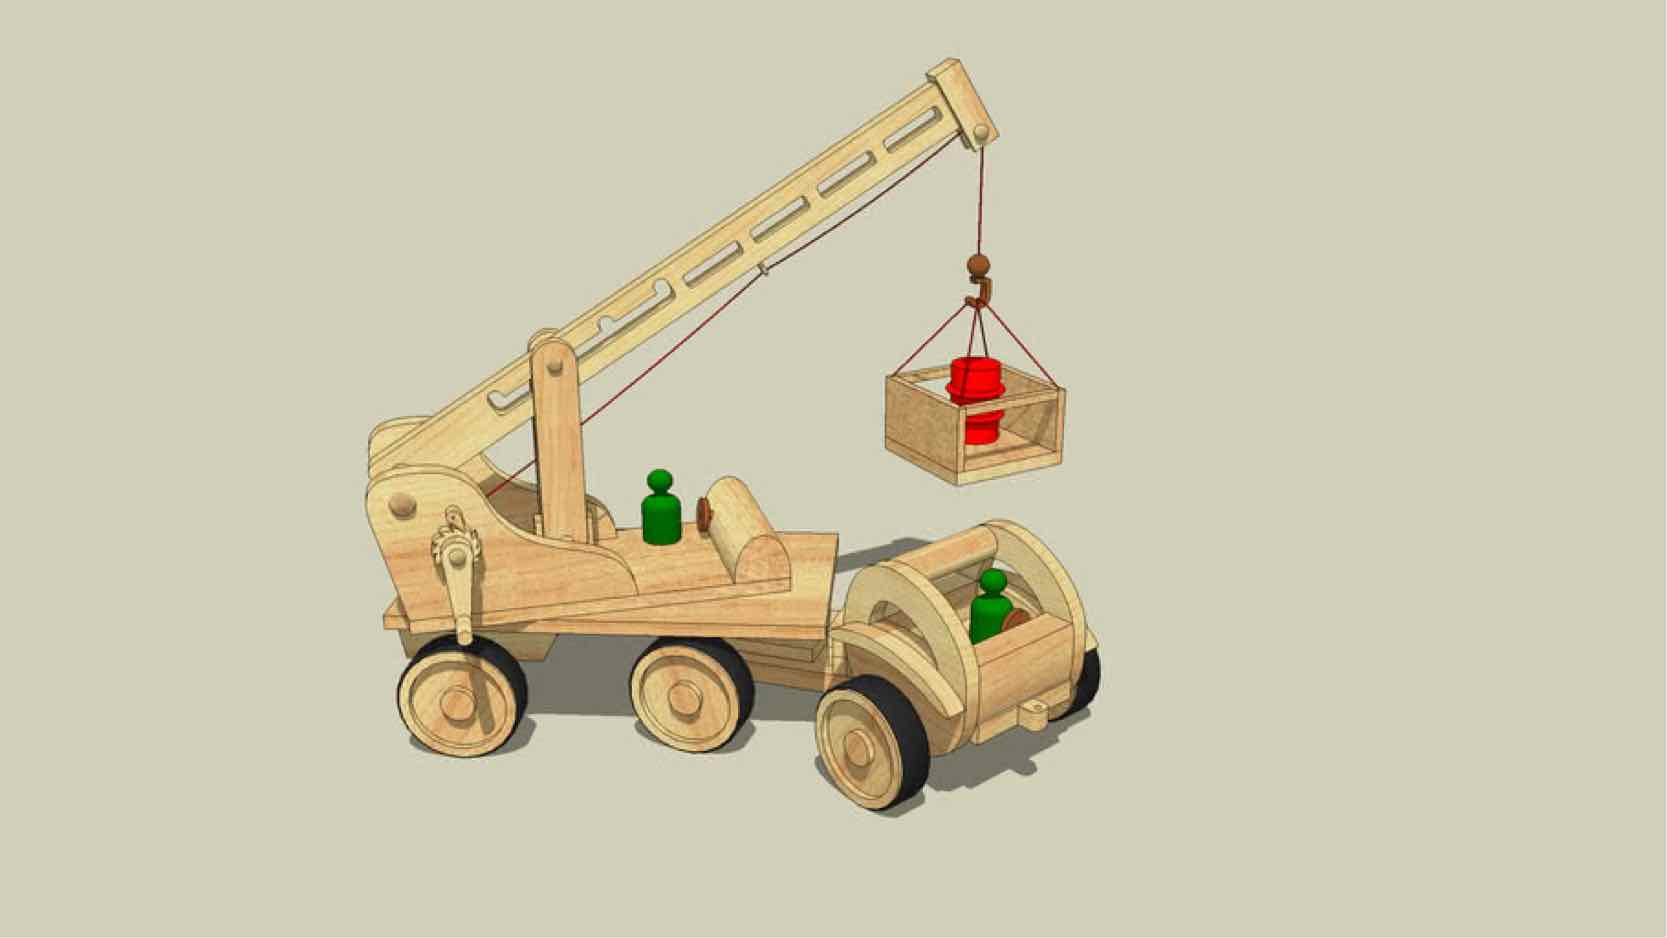 toys,cranes,wooden,free woodworking plans,free projects,do it yourself,childs,kids,childrens